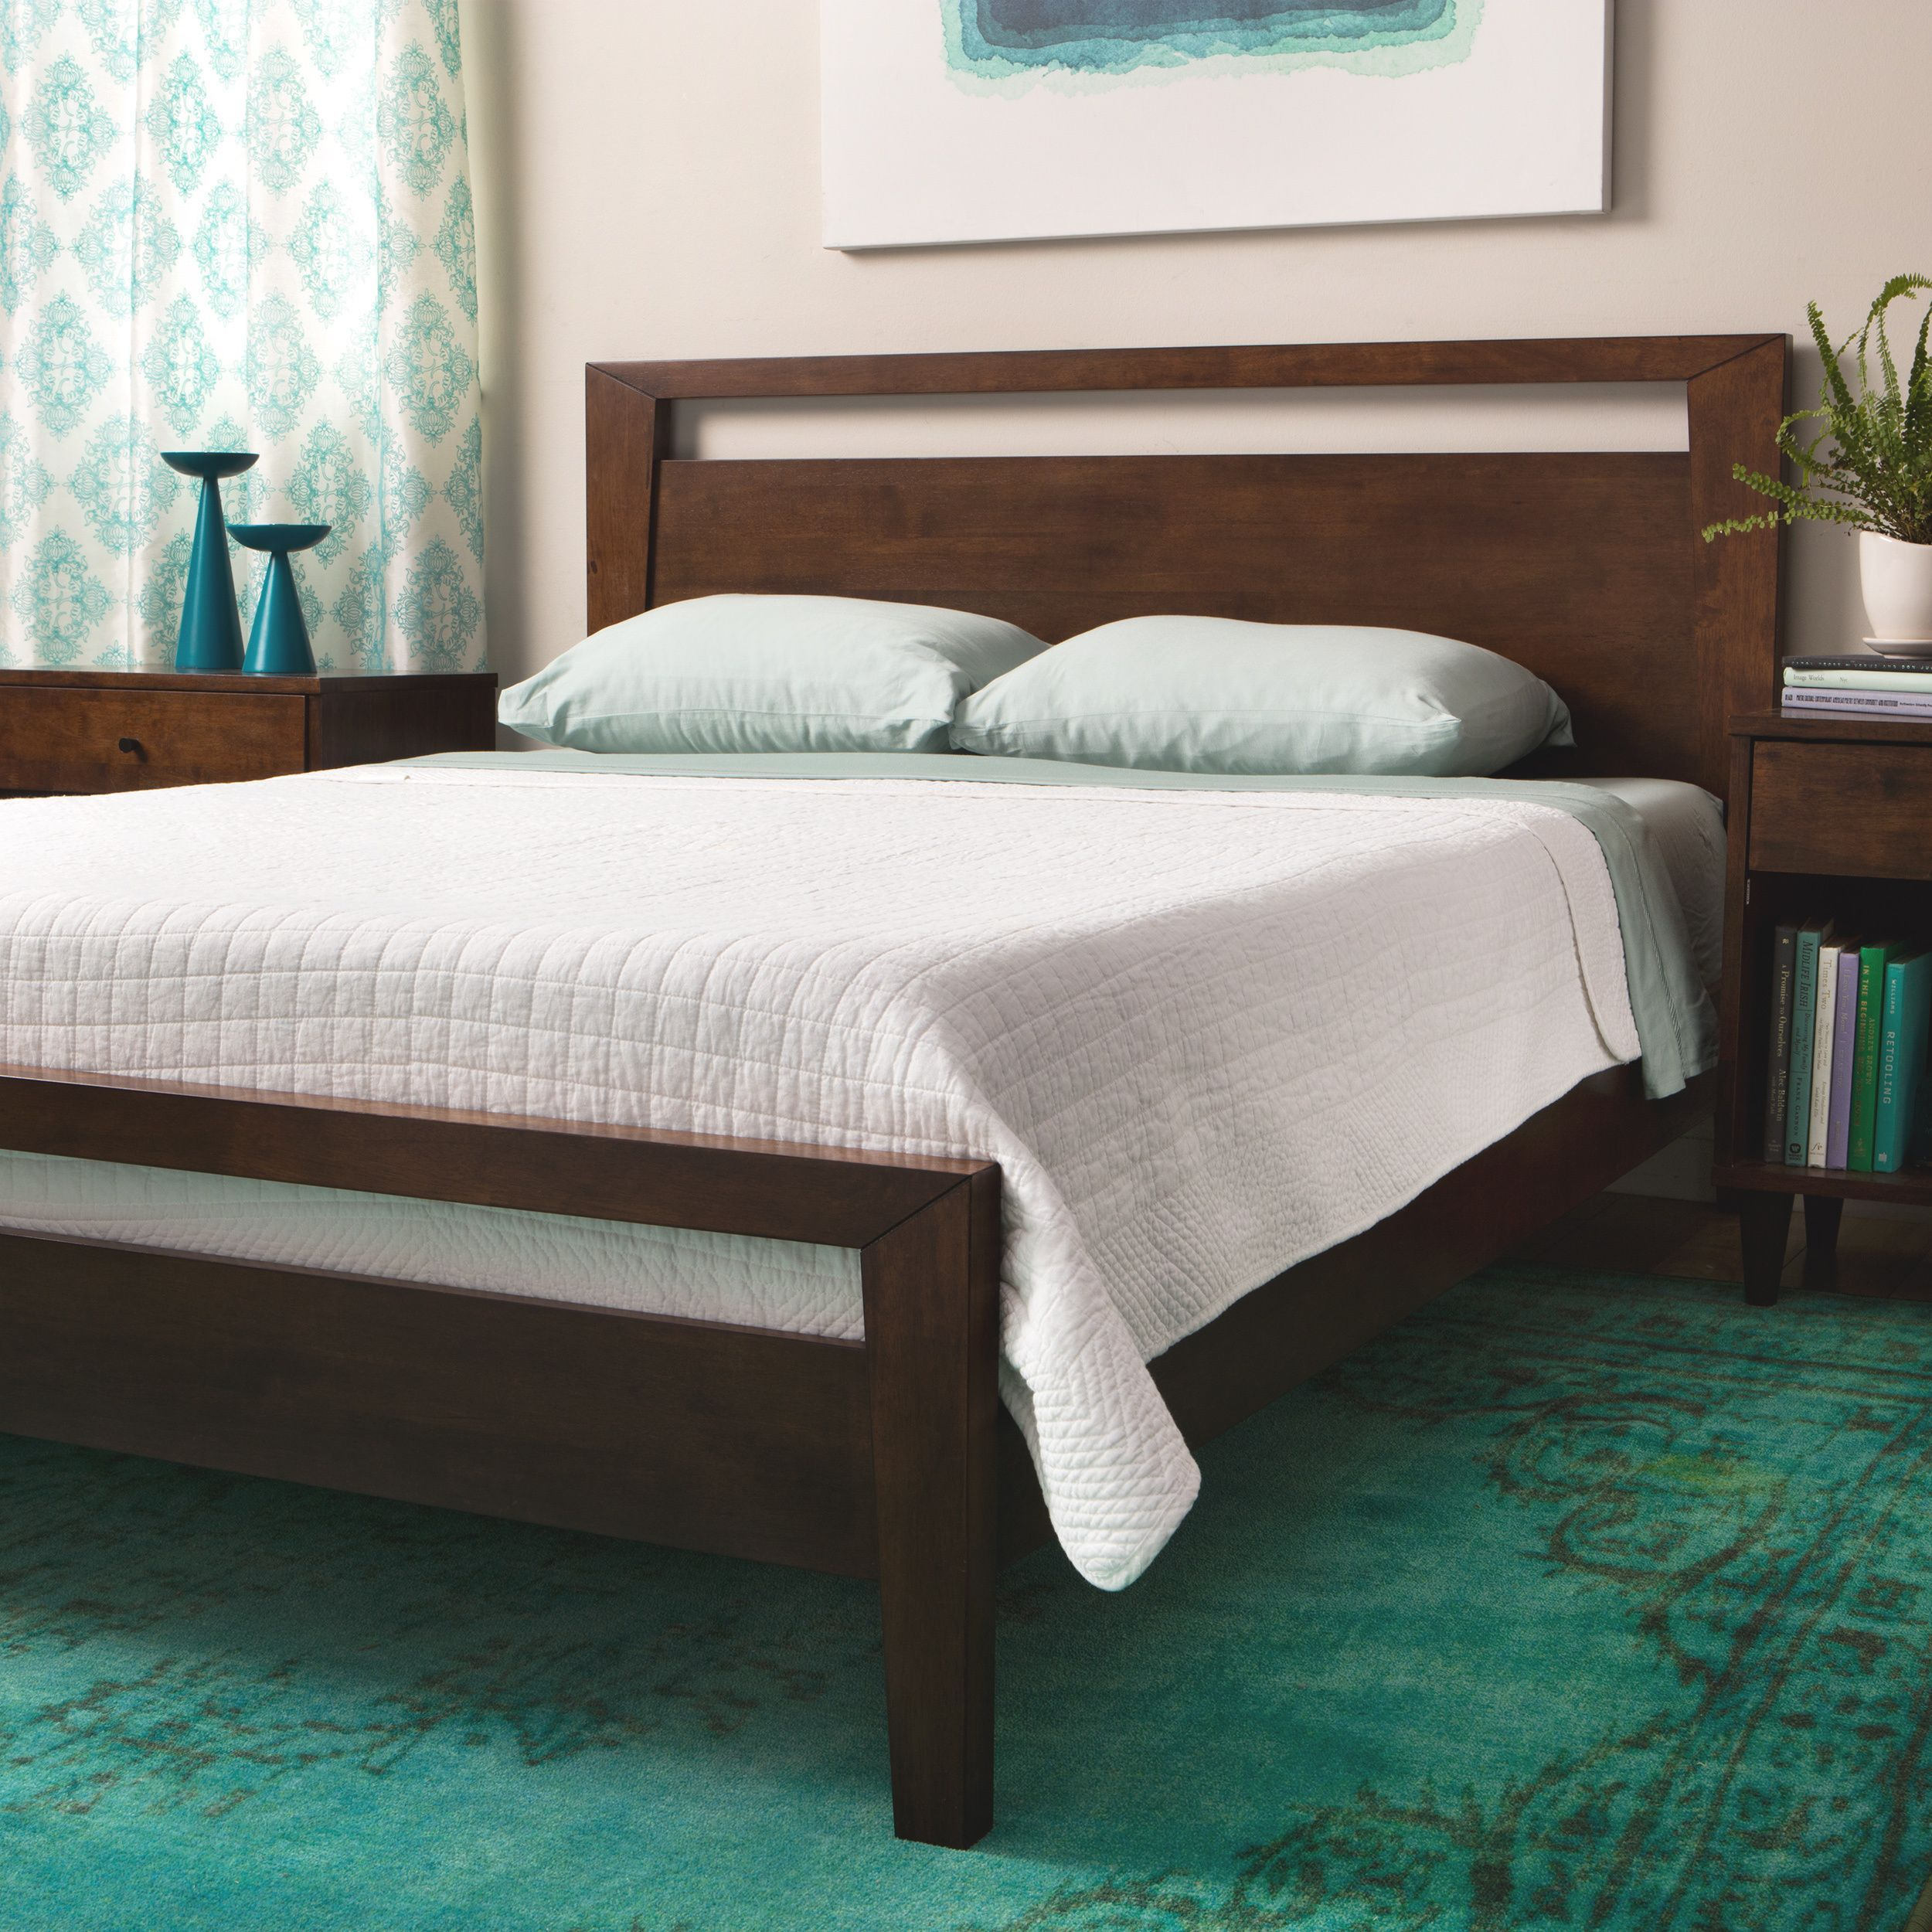 Best Give Your Bedroom A Modern Touch With This Stylish King 400 x 300